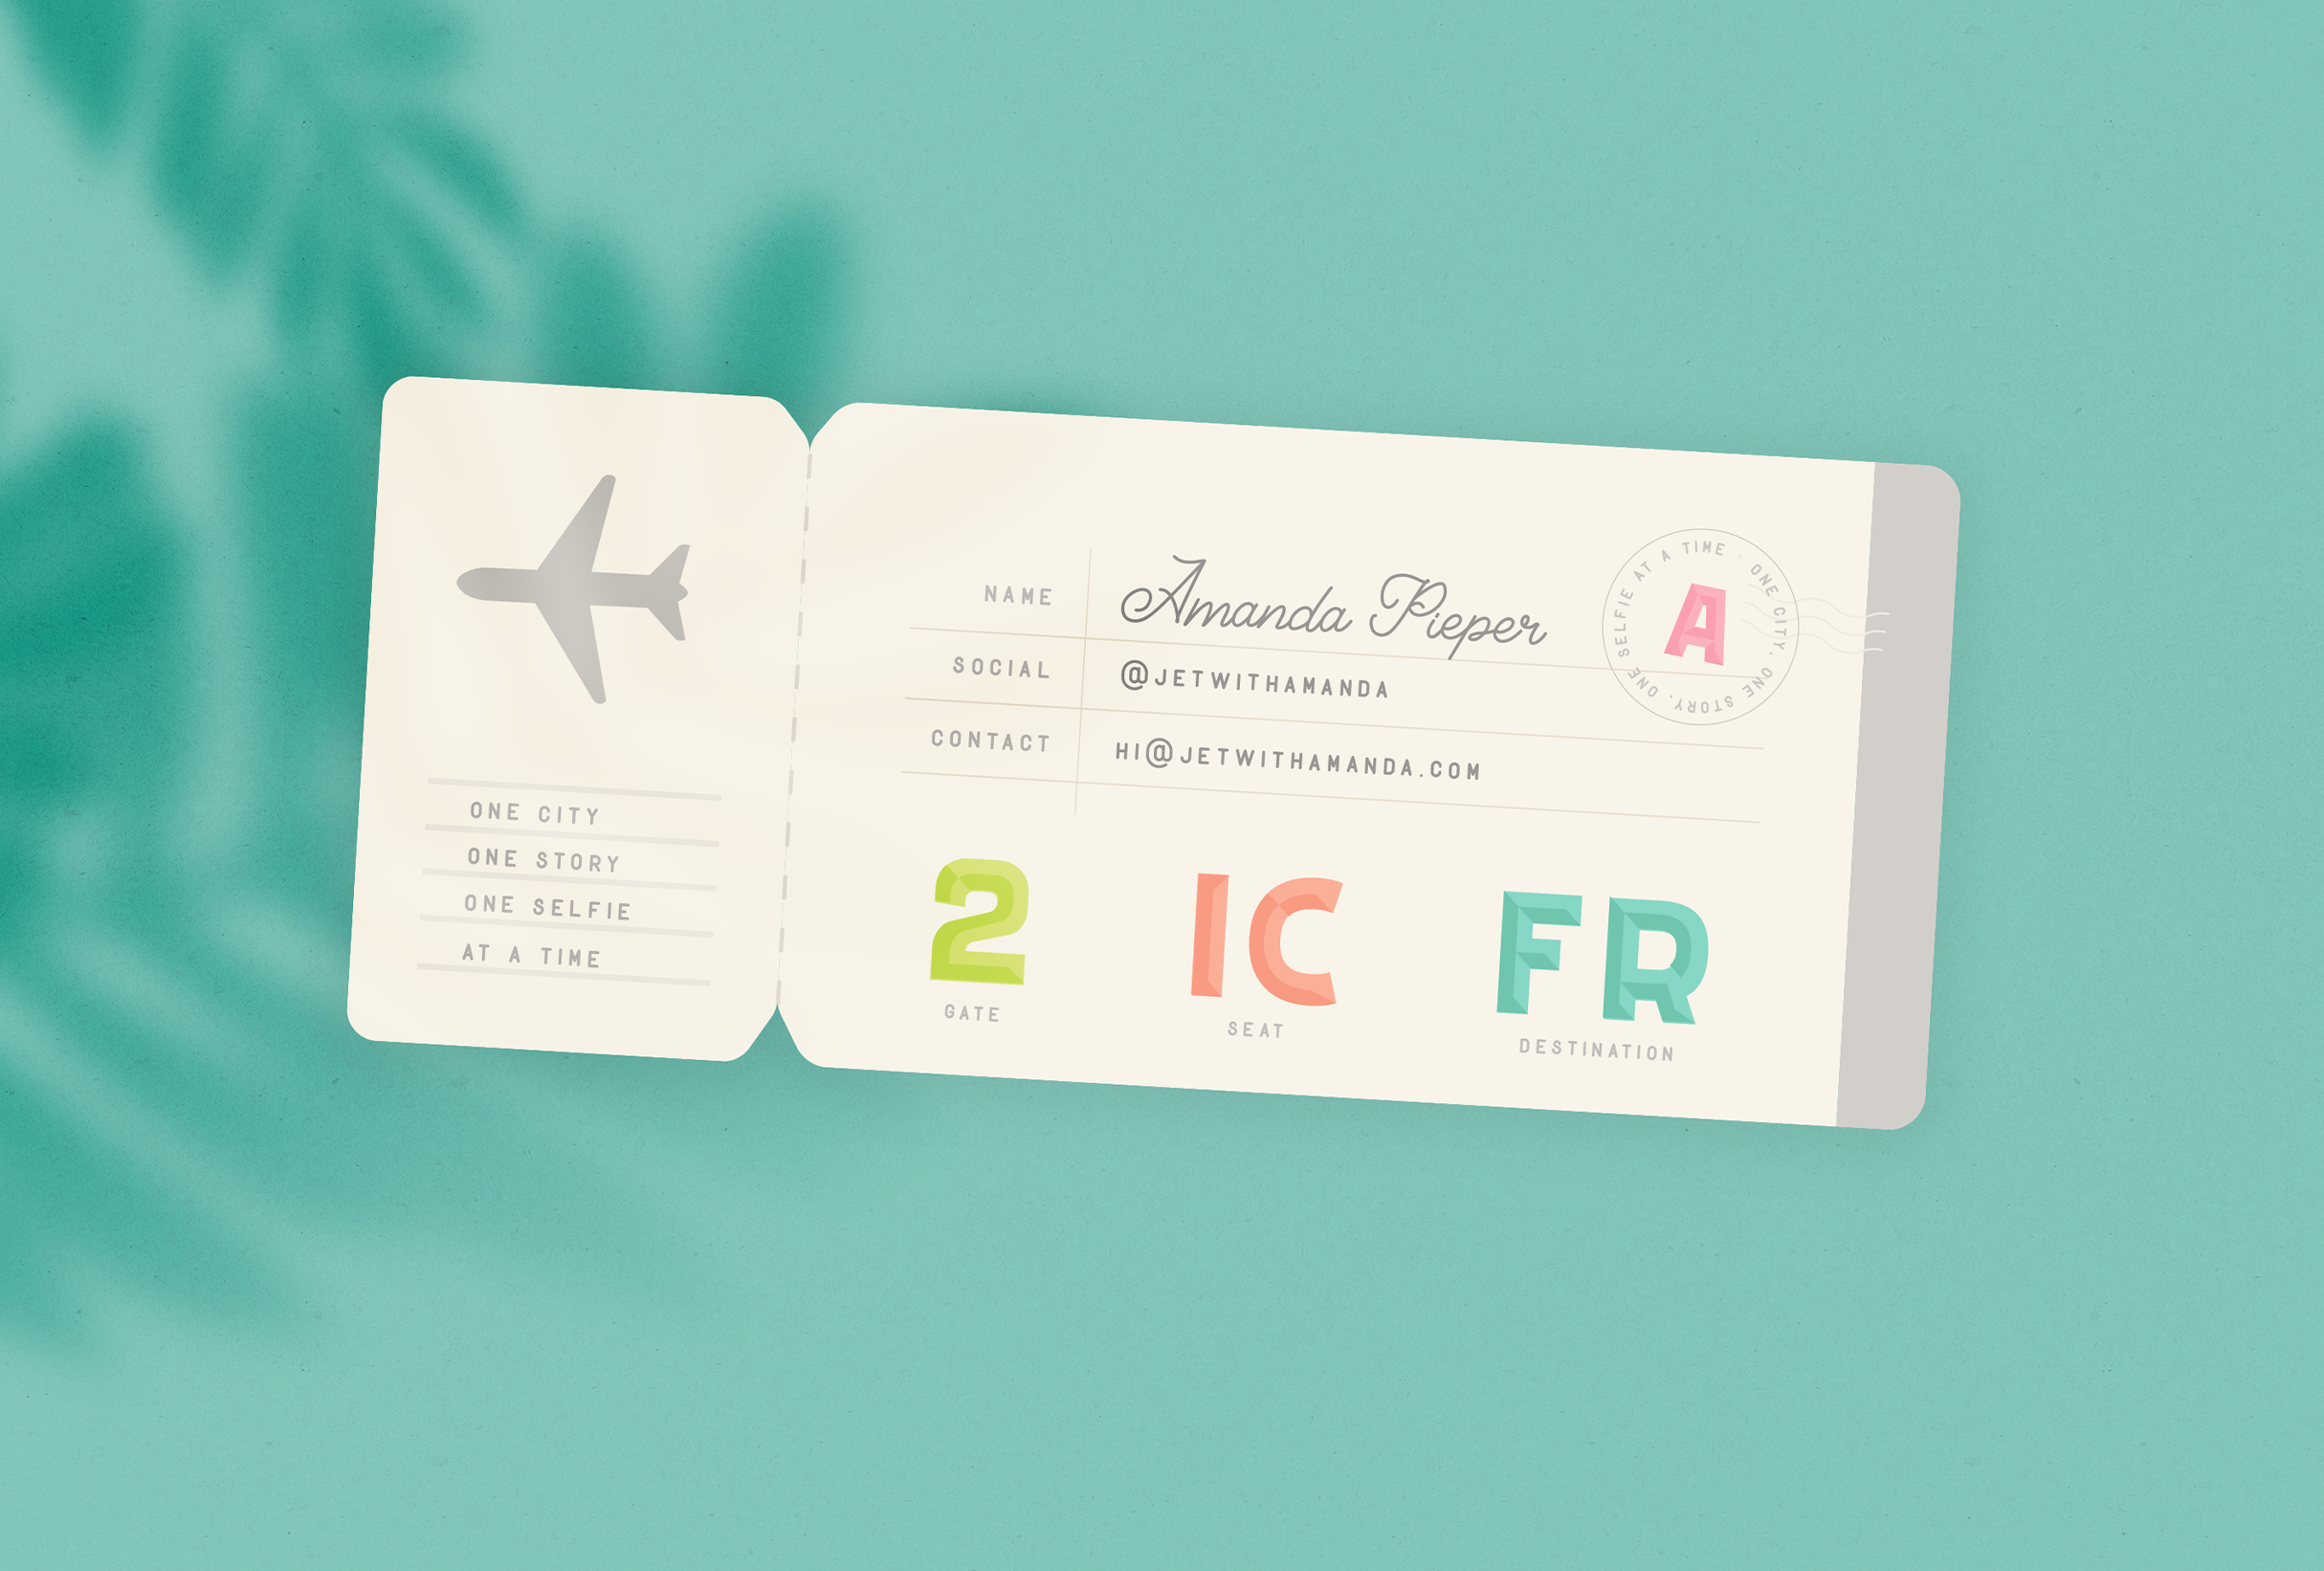 Fun ticket design for Jet with Amanda, a private jet flight attendant sharing her adventures and recommendations via her Instagram, YouTube and blog - designed by Wiltshire-based graphic designer, Kaye Huett